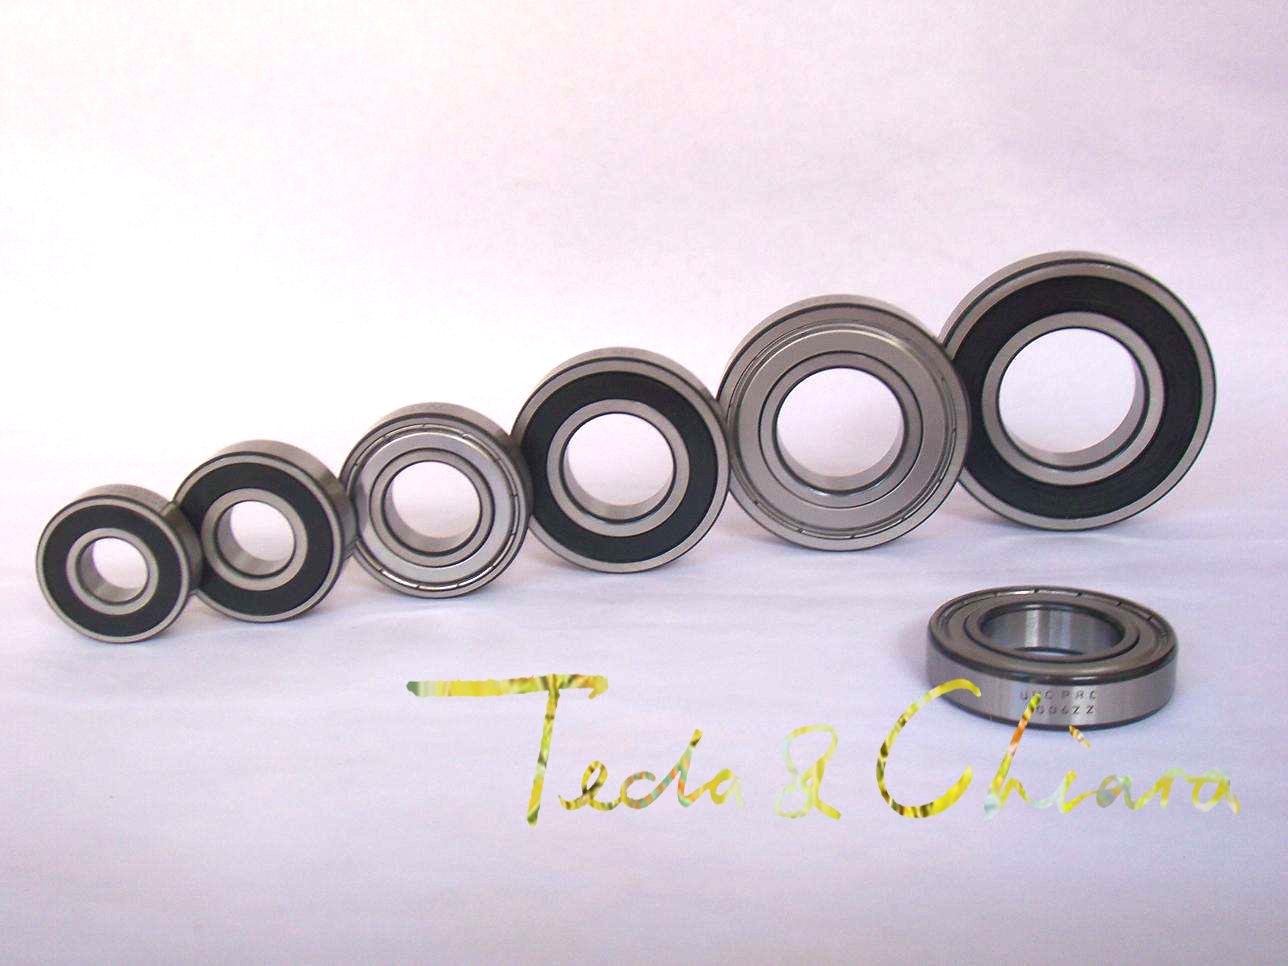 6801 6801ZZ 6801RS 6801-2Z 6801Z 6801-2RS ZZ RS RZ 2RZ Deep Groove Ball Bearings 12 x 21 x 5mm High Quality samsung rs 21 fcsw page 5